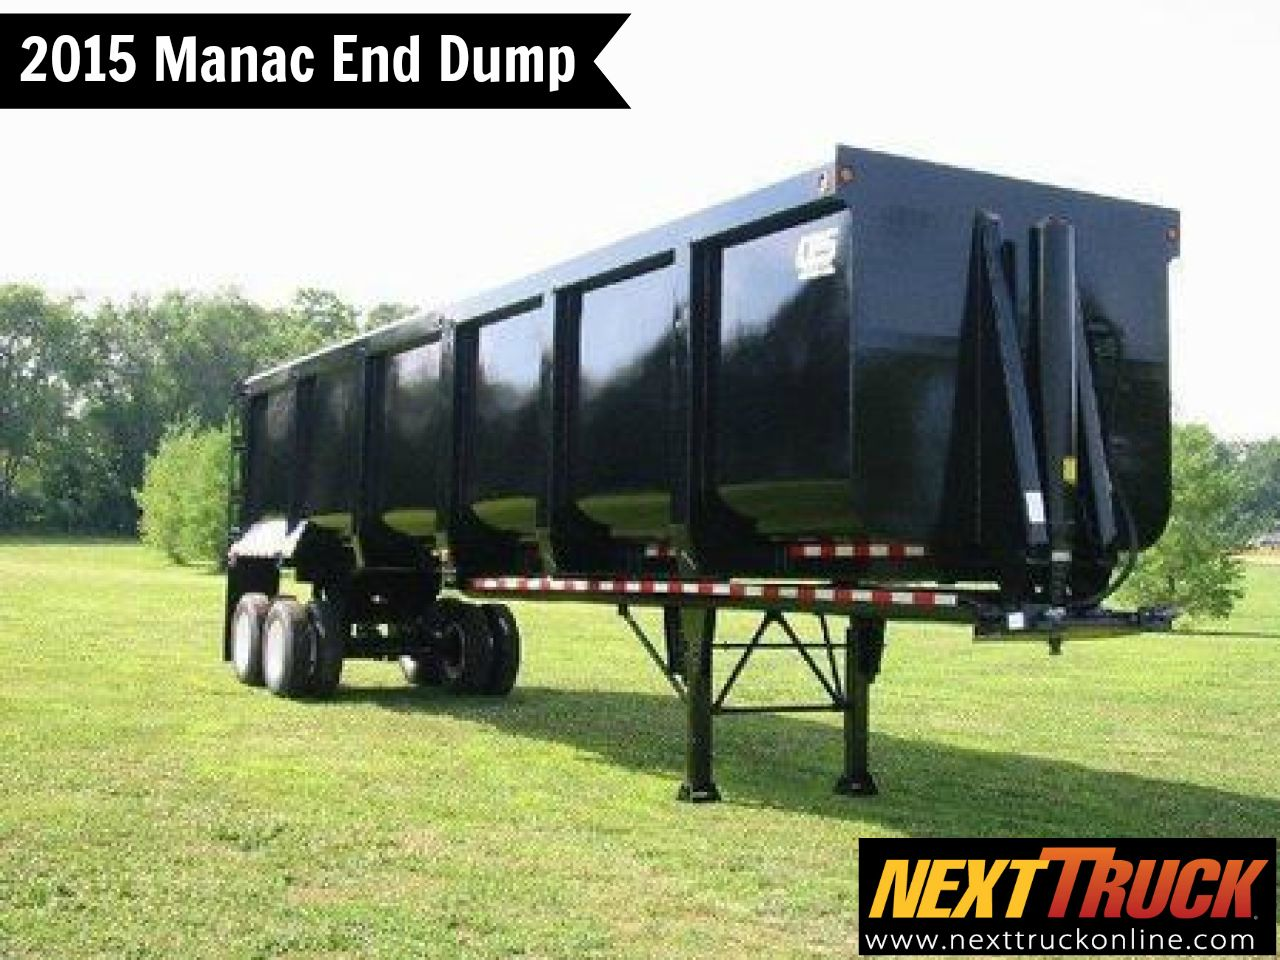 Our featured trailer is a 2015 manac end dump 40